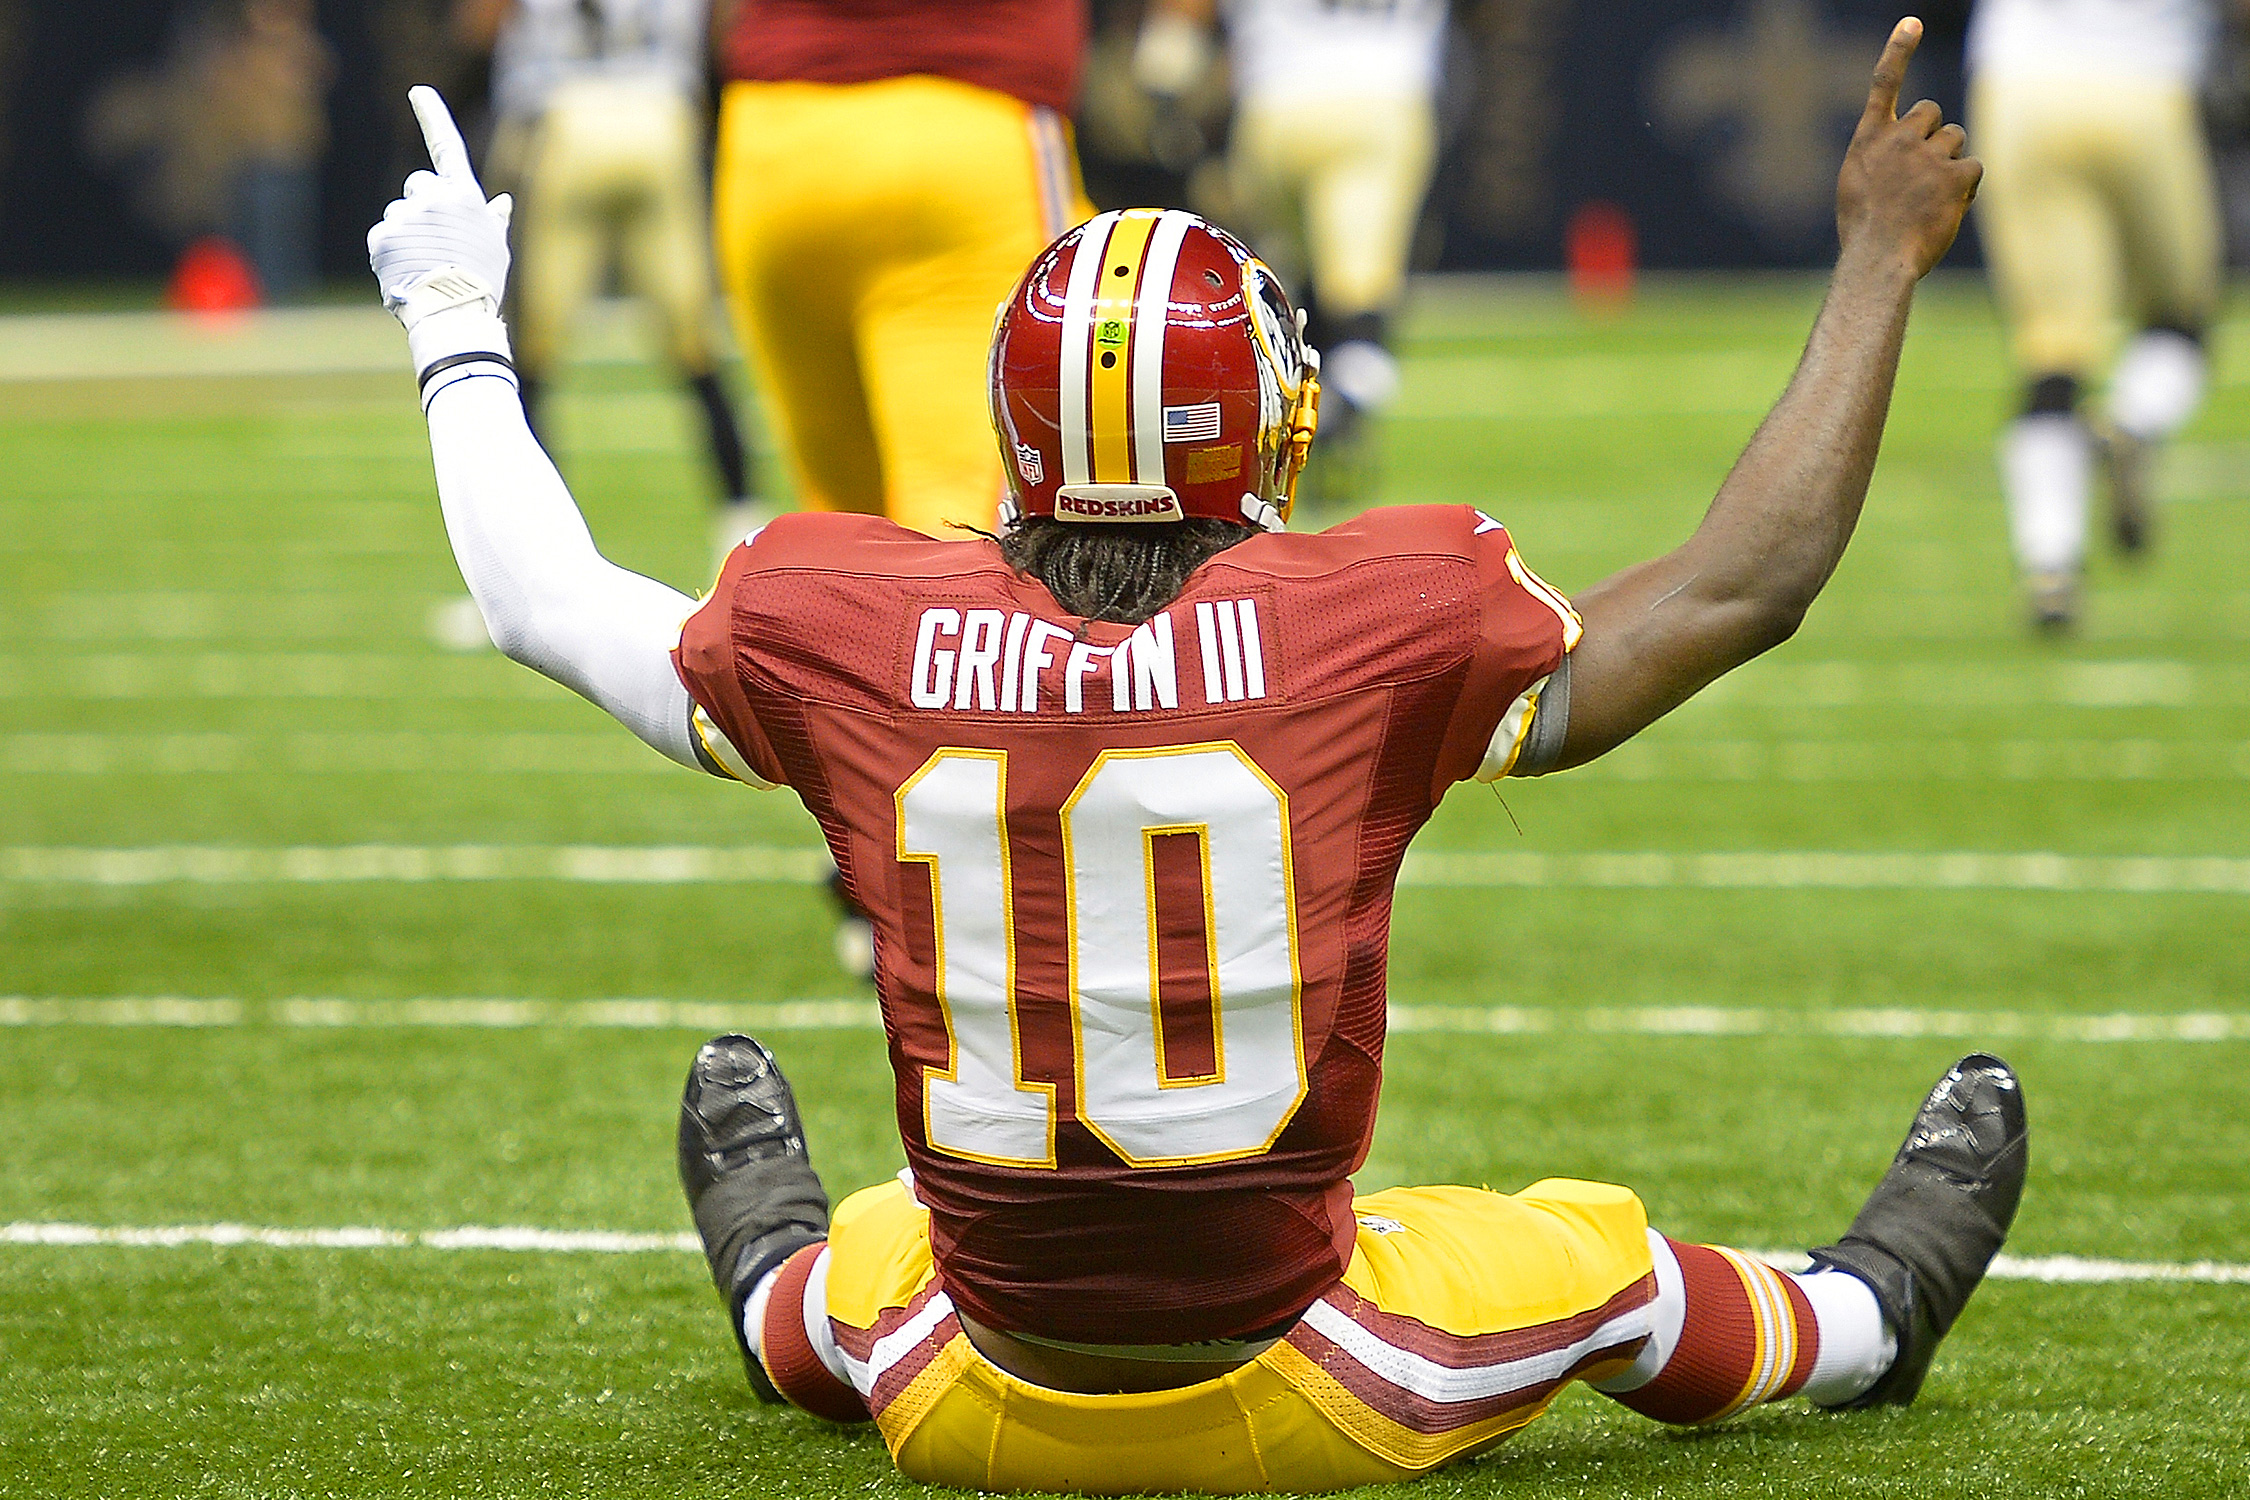 Ah, the future once looked so bright. Griffin's debut was a gem: he went 19/26 for 320 yards, for two touchdowns and no interceptions, and rushed for 42 yards on nine carries. Oh, and his first NFL touchdown came on one play on his second drive of the game—an 88-yard throw to Pierre Garcon. The rookie outdid Drew Brees, and led the Redskins to a 40–32 win over the Saints becoming the first QB to throw for more than 300 yards in a winning debut (Cam's 422-yard debut was a loss).